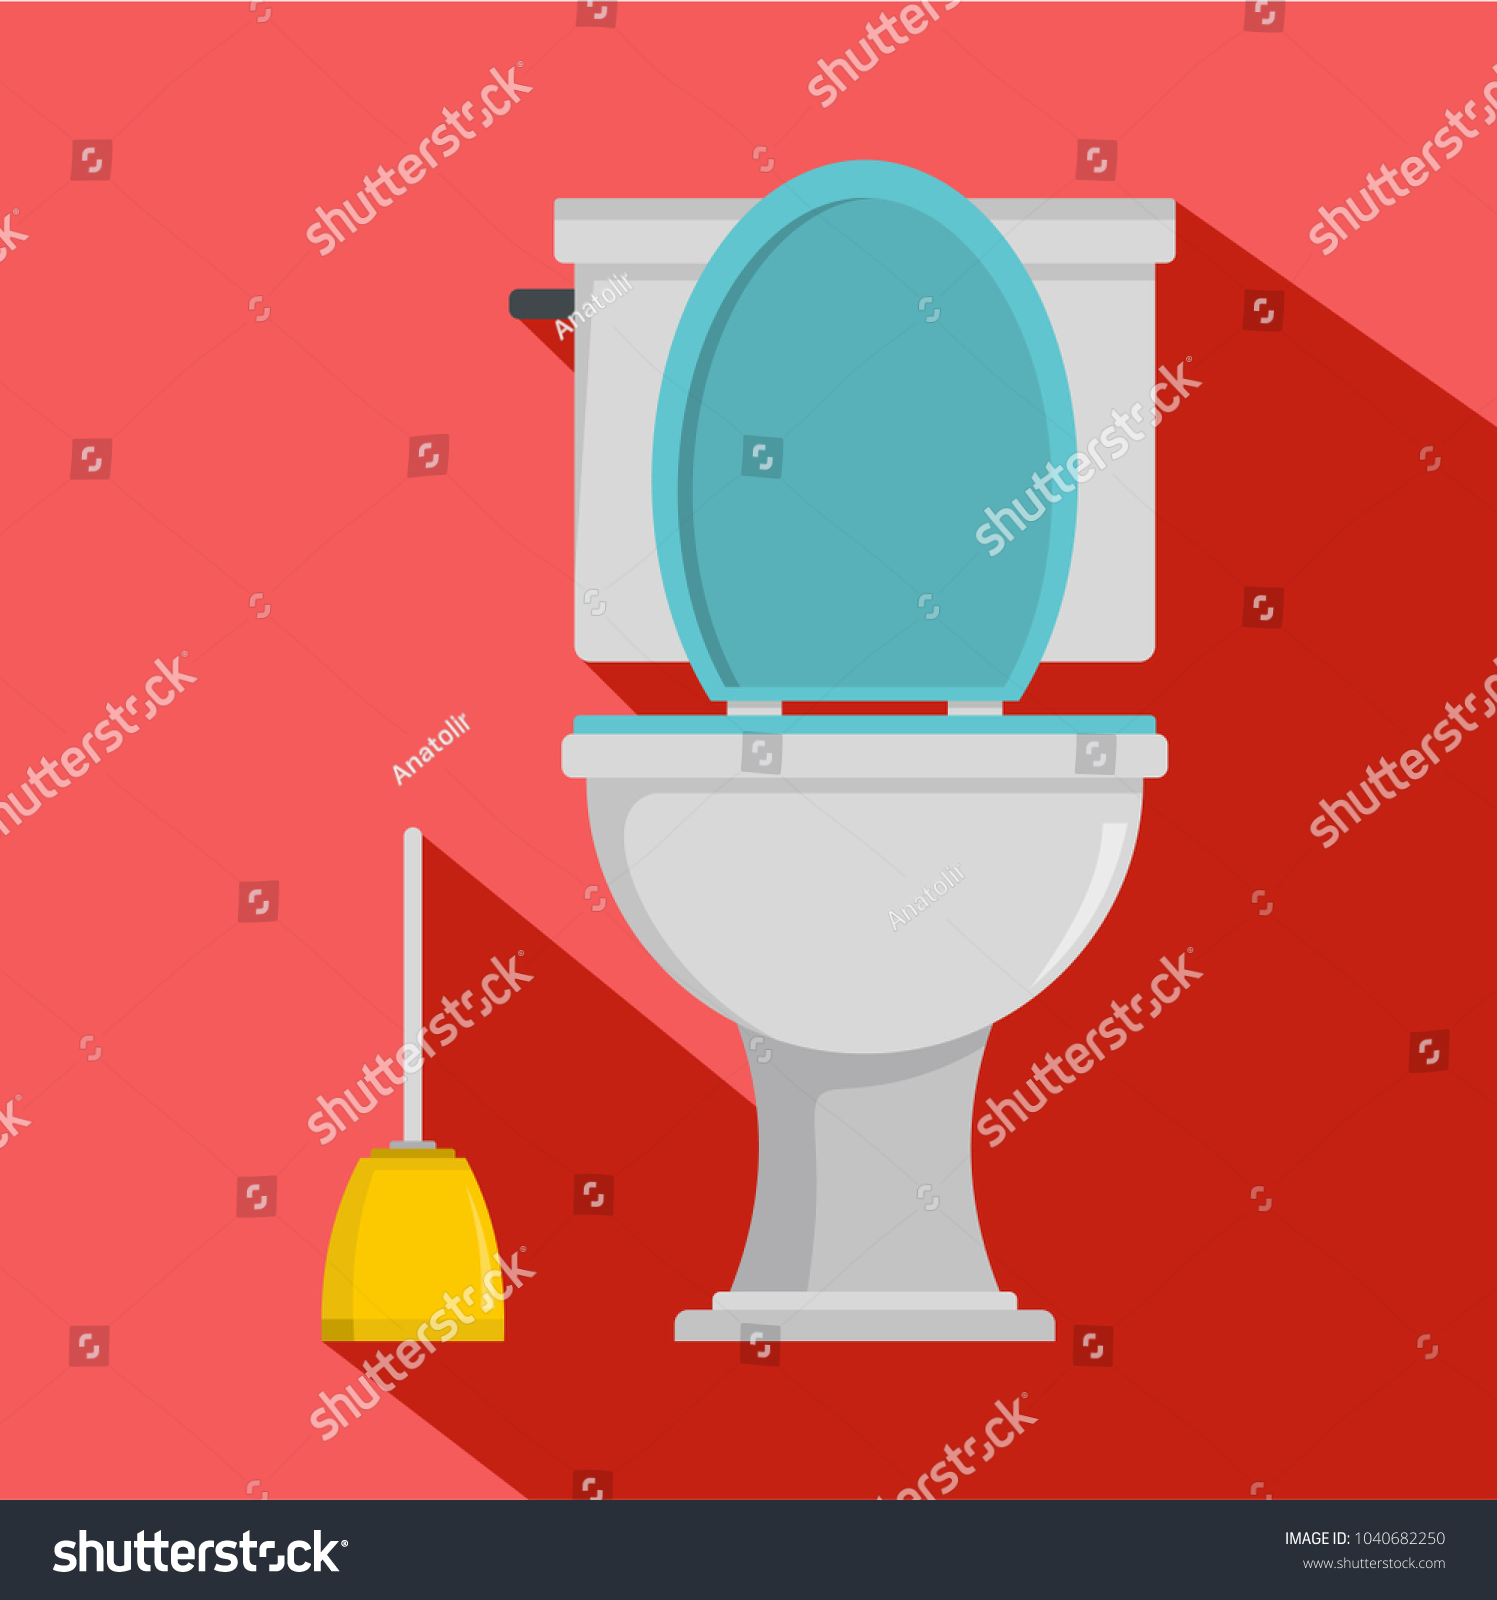 Comfort Toilet Icon Flat Illustration Comfort Stock Vector (Royalty ...